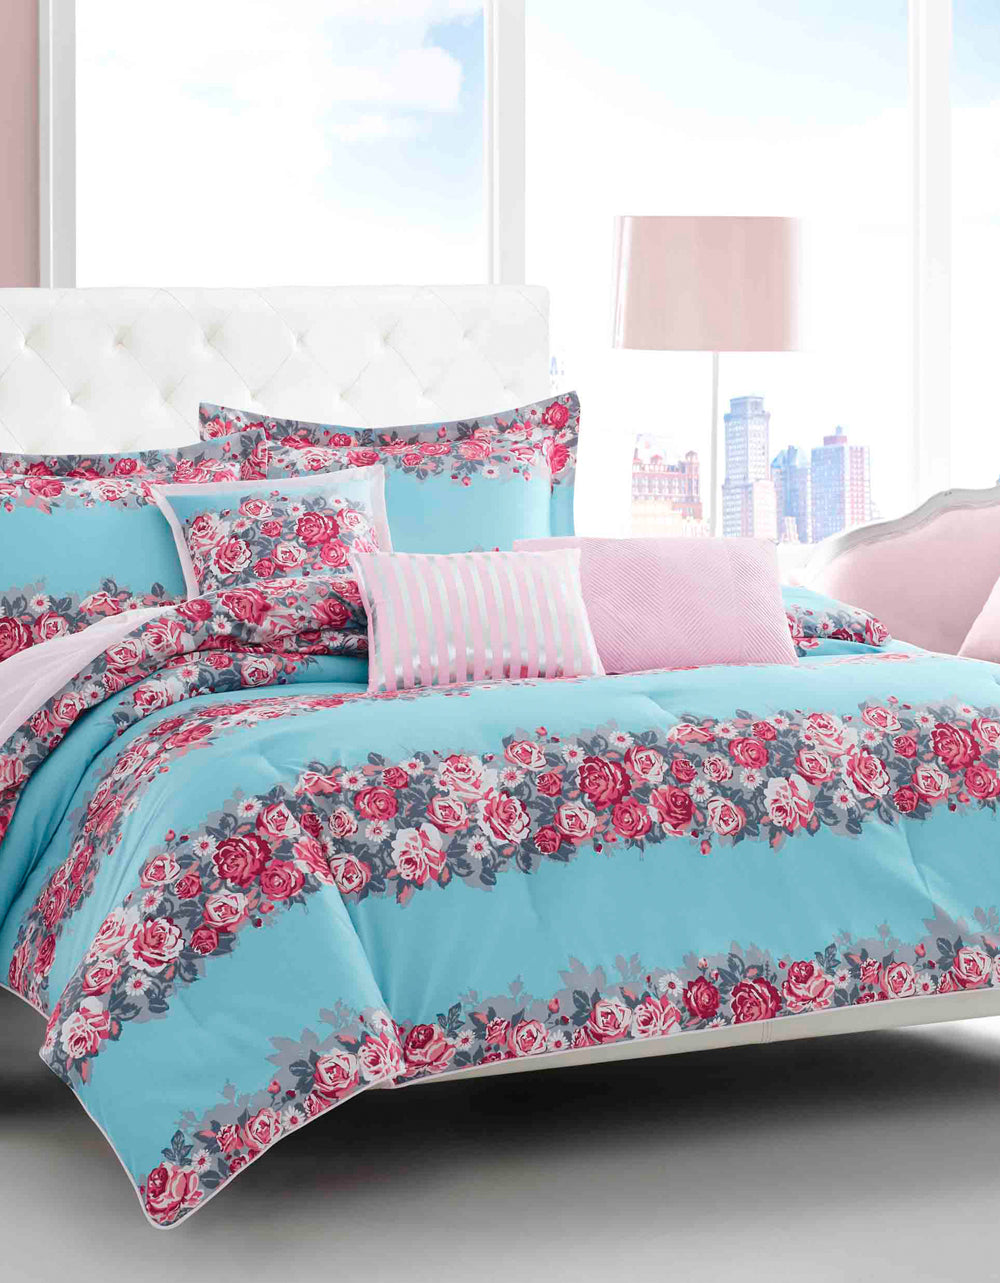 BANDED FLORAL KING COMFORTER SET TURQUOISE - BEDDING - Betsey Johnson